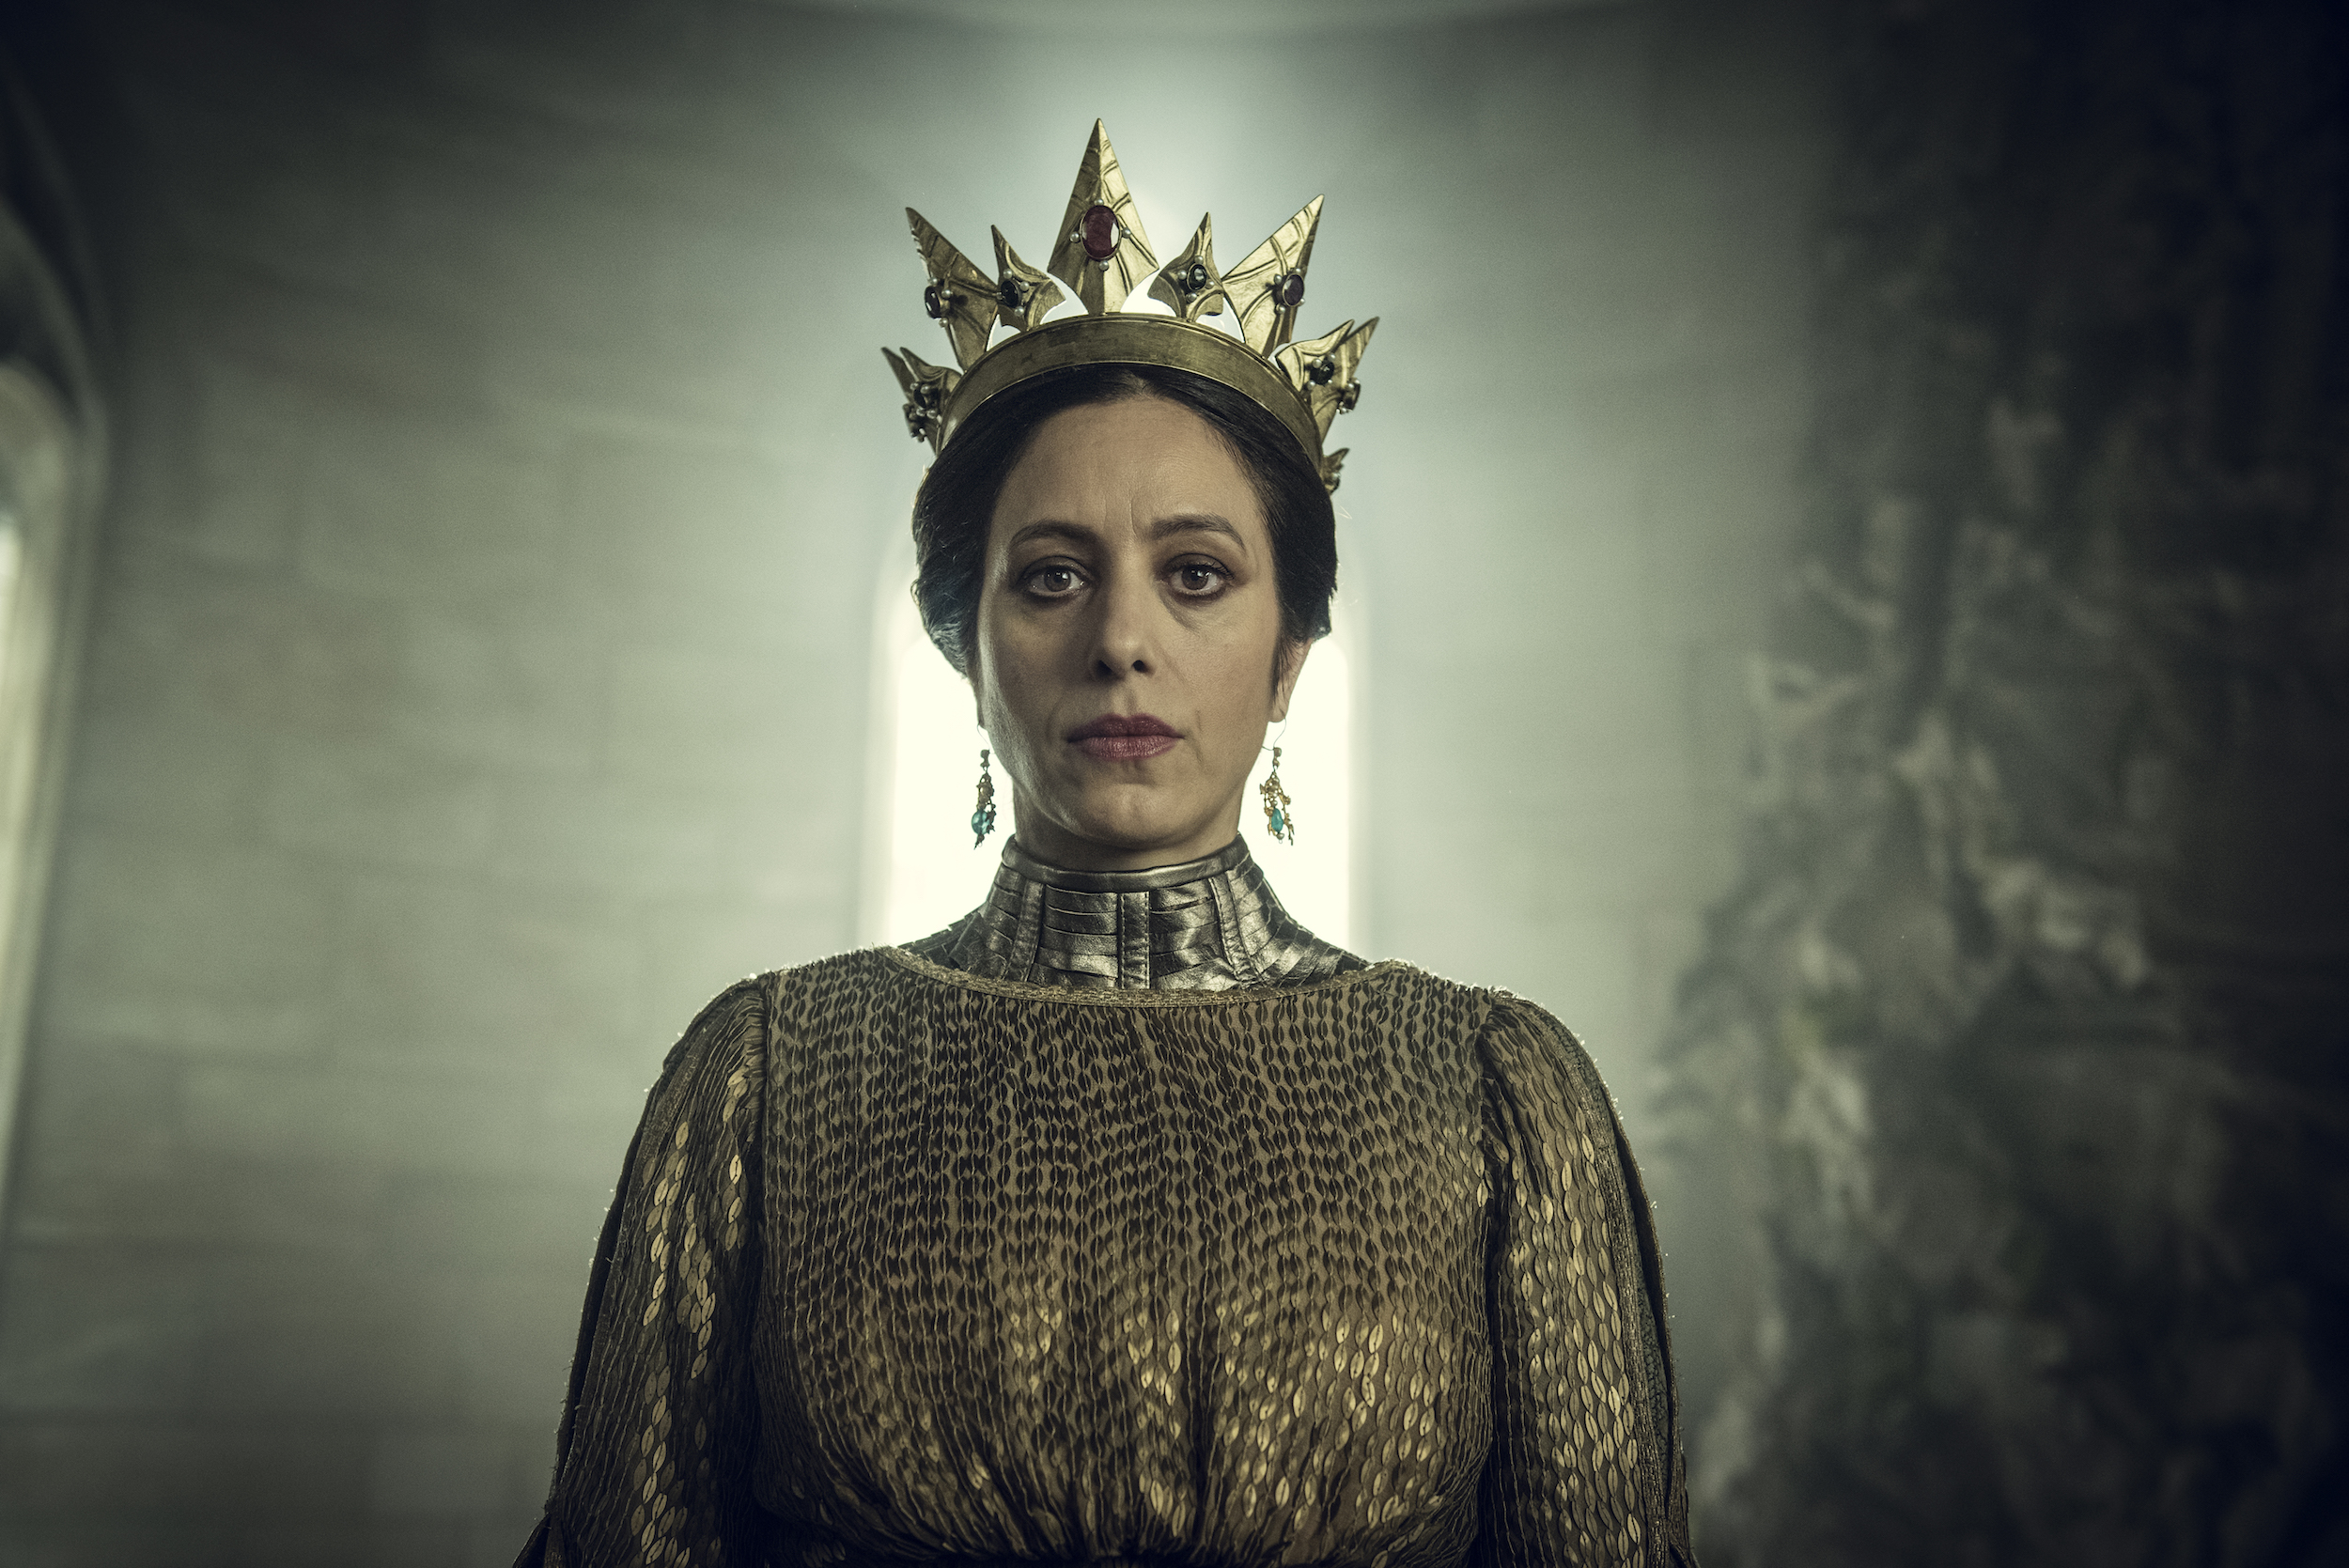 Queen Calanthe, a dark-haired woman wearing a golden dress and a golden crown, framed by light behind her in The Witcher